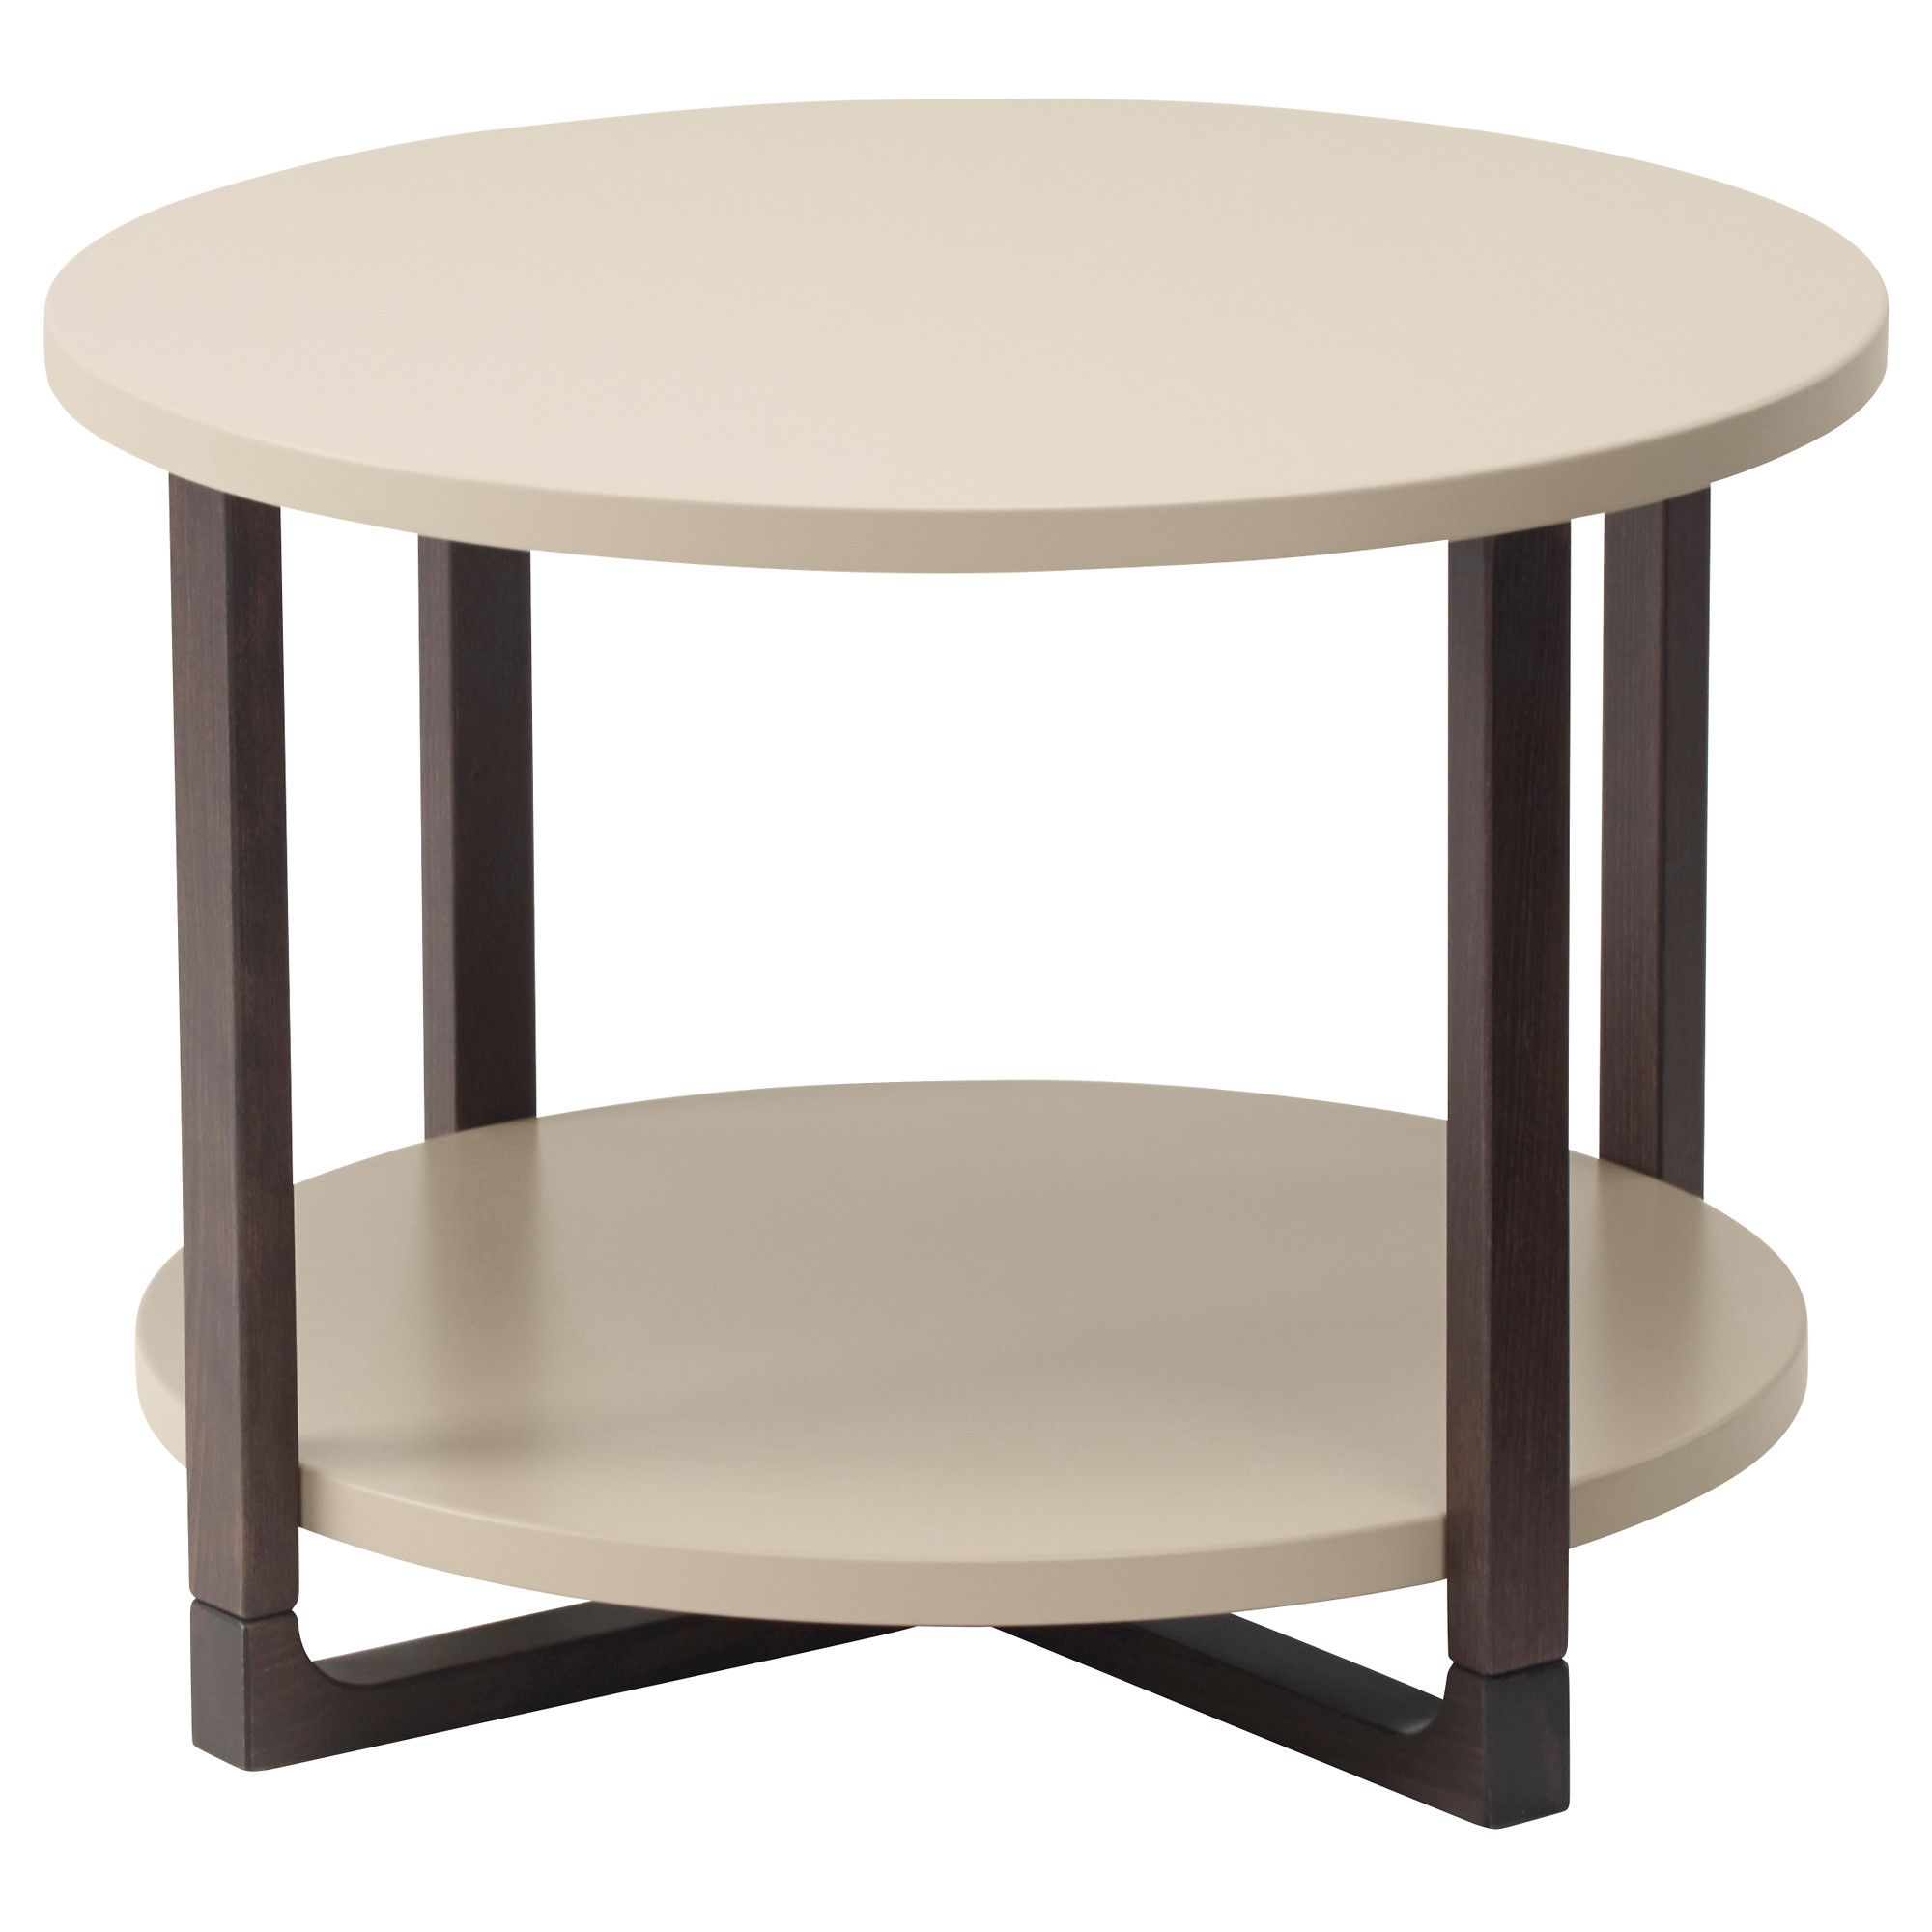 Ikea Console And Coffee Table: RISSNA, Side Table, , Separate Shelf For Magazines